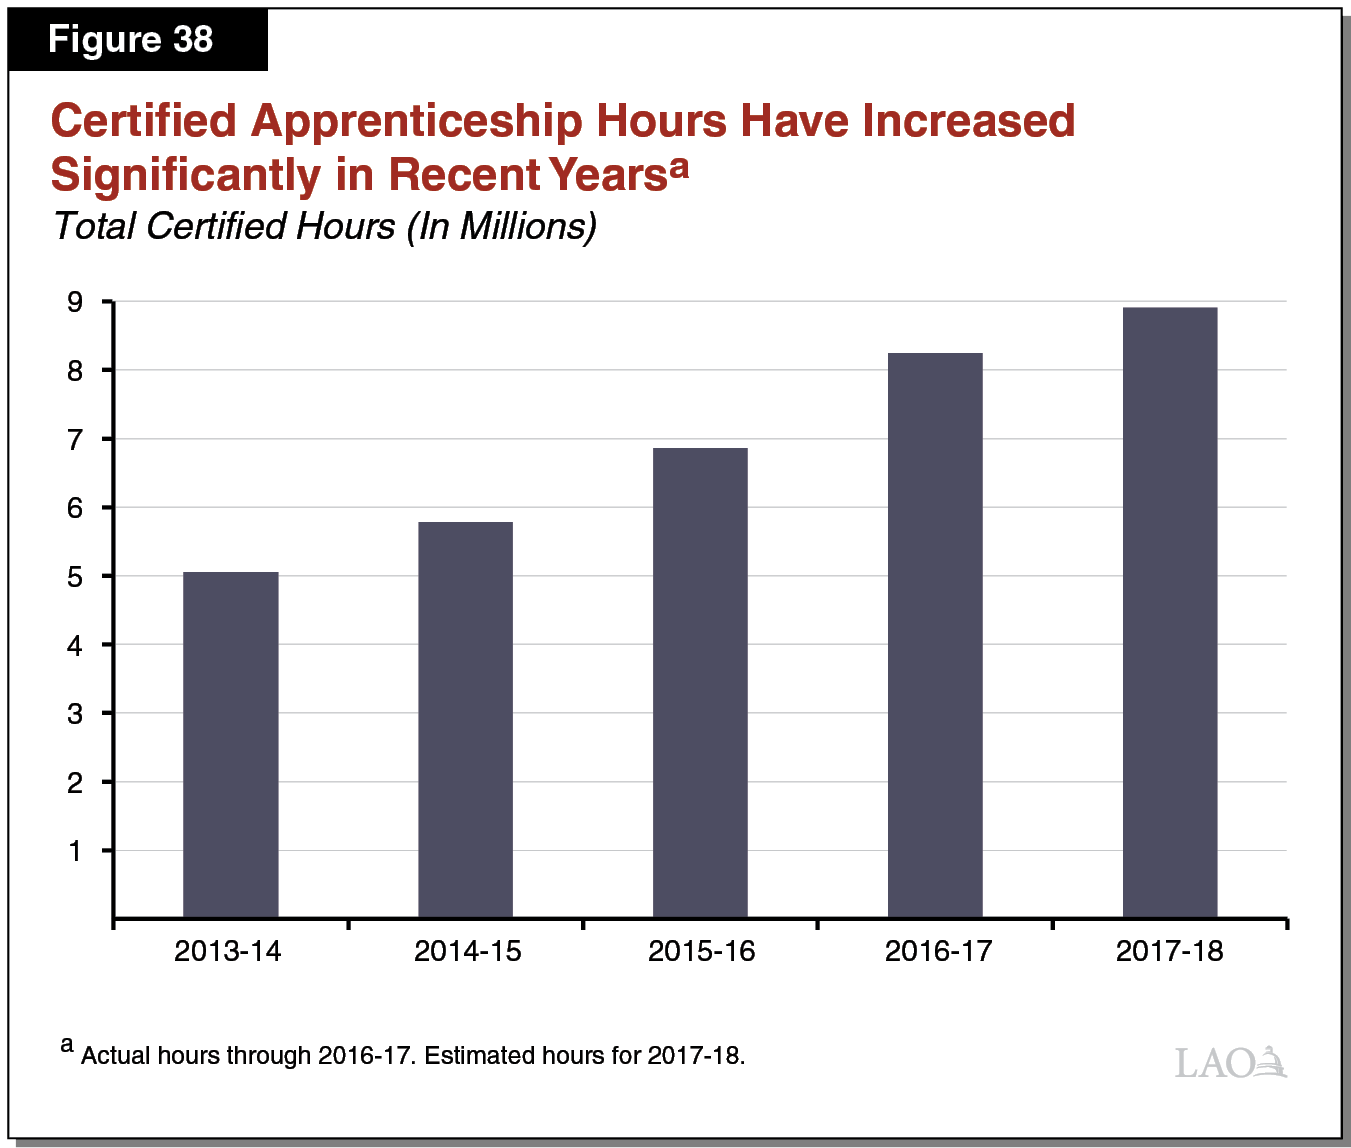 Figure 38 - Certified Apprenticeship Hours Have Increased Significantly in Recent Years